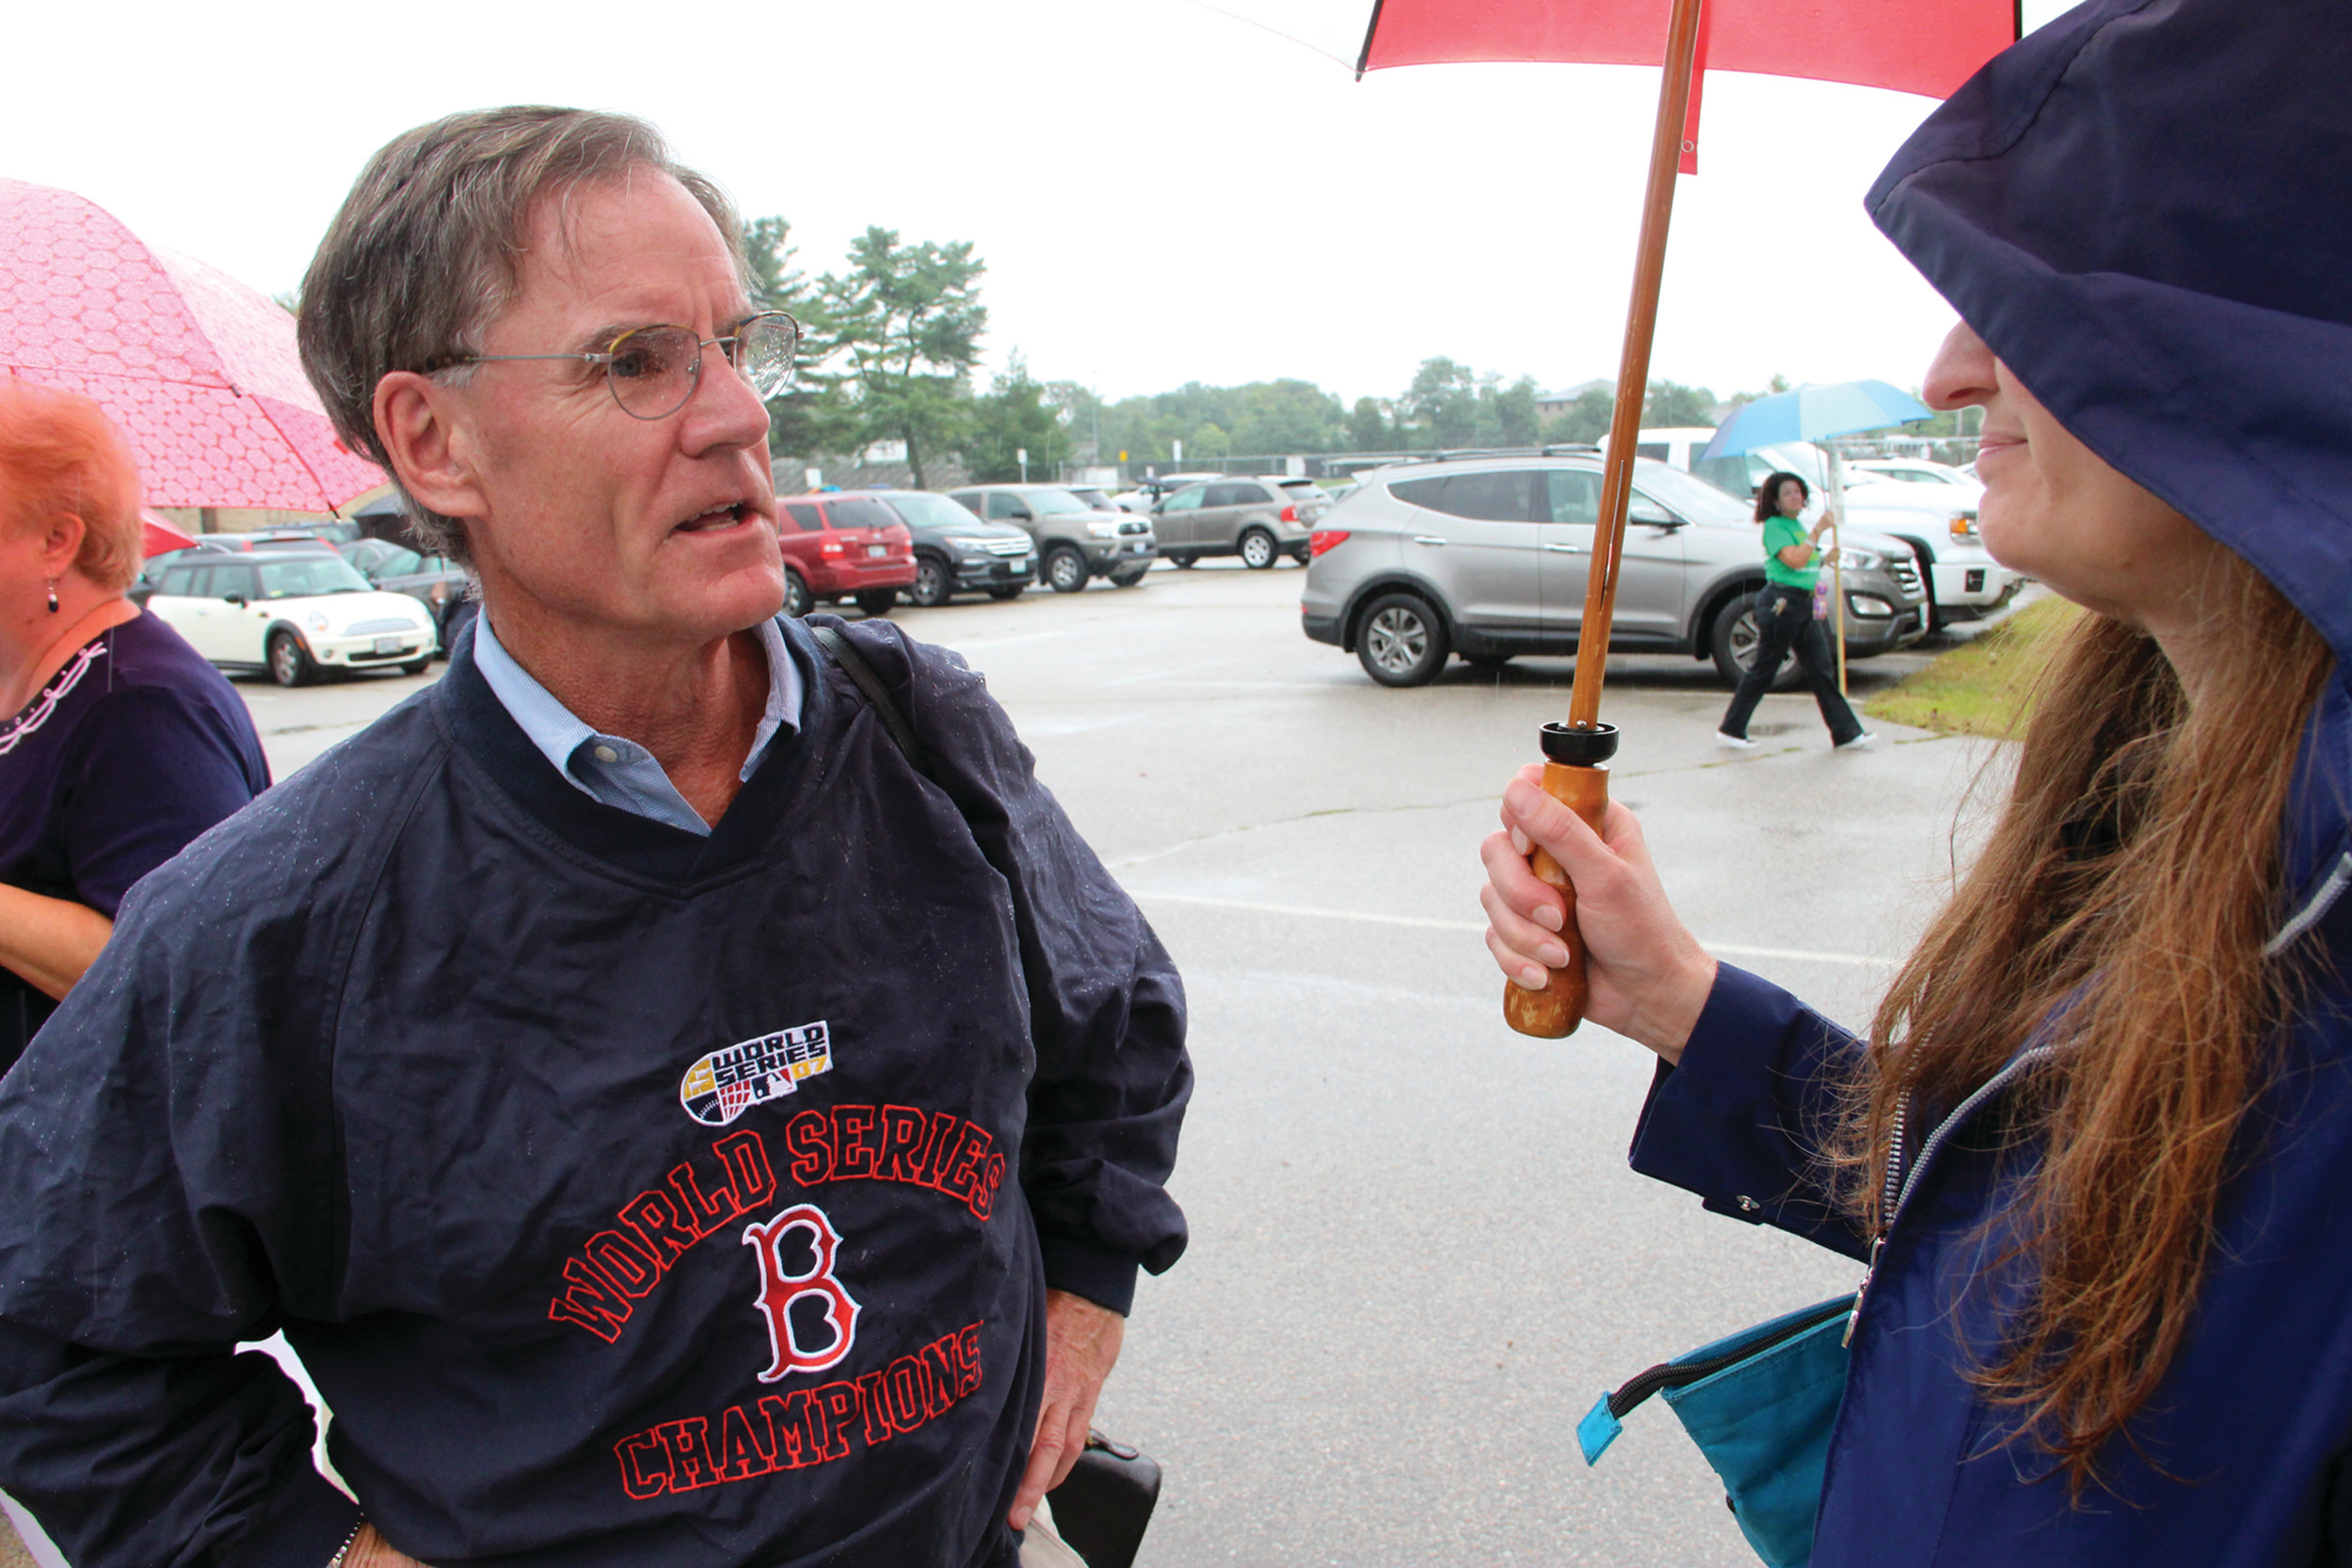 GIVING COUNSEL: Ward 1 City Councilor Richard Corley discusses with Darlene Netcoh during the informational picket outside of Pilgrim High School on Wednesday. Corley was present to attend a walkthrough of the school to assess areas of need for future renovations.